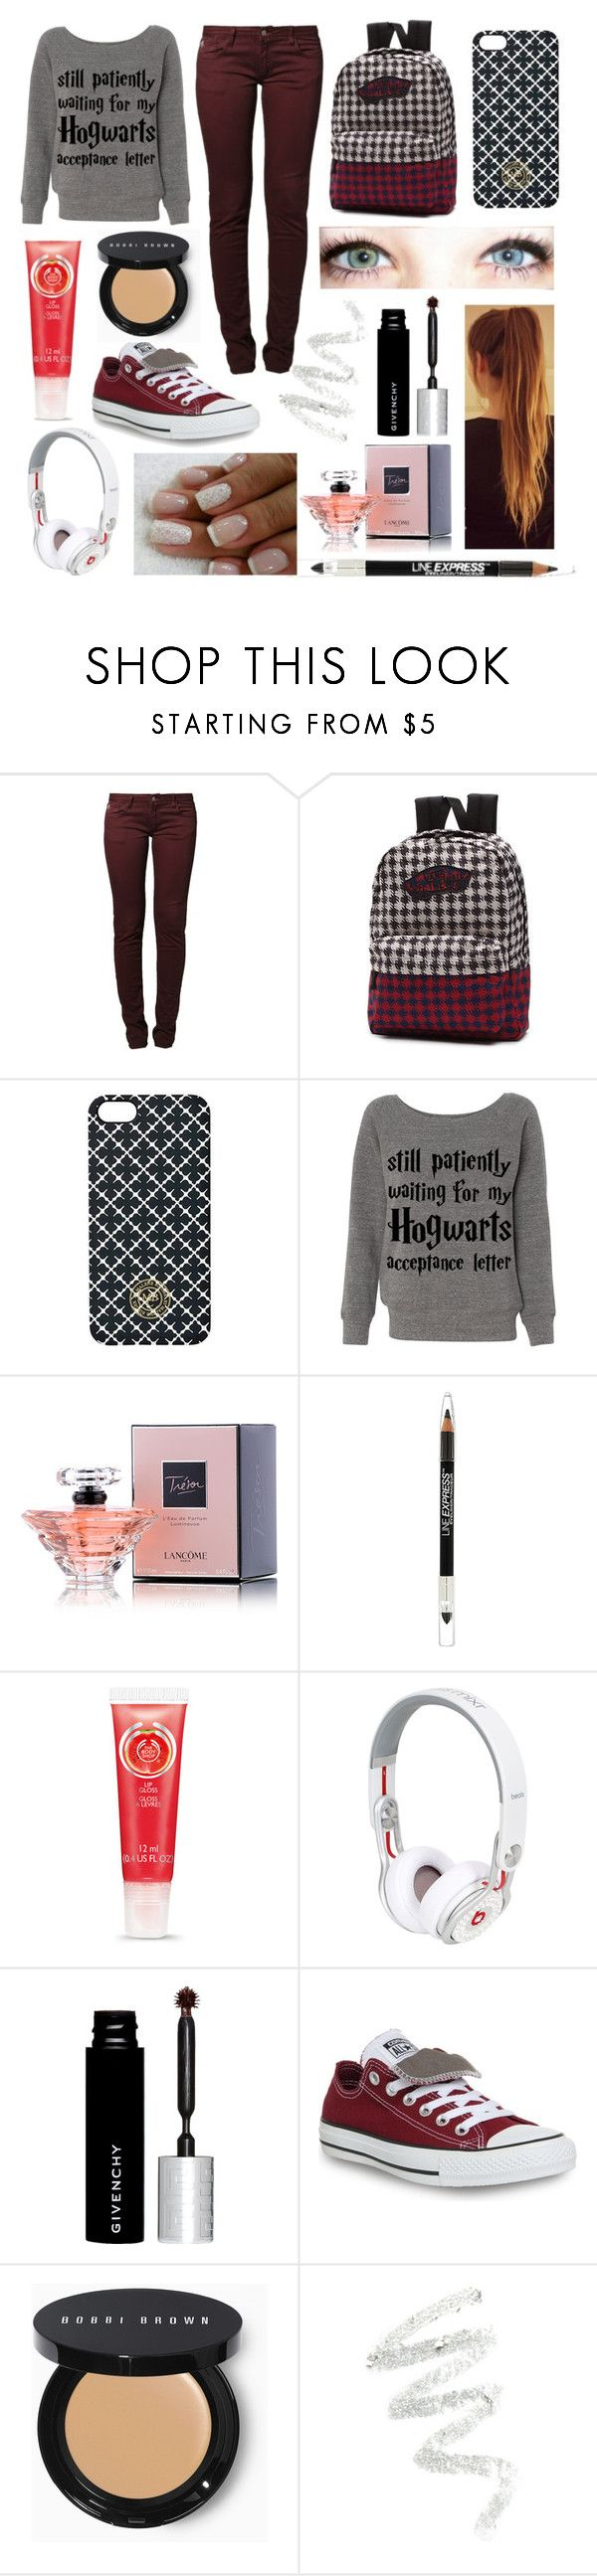 """#2"" by bella-has-a-galaxy ❤ liked on Polyvore featuring Le Temps Des Cerises, Vans, KEEP ME, By Malene Birger, Lancôme, Maybelline, Seconda Base, Givenchy, Converse and Bobbi Brown Cosmetics"